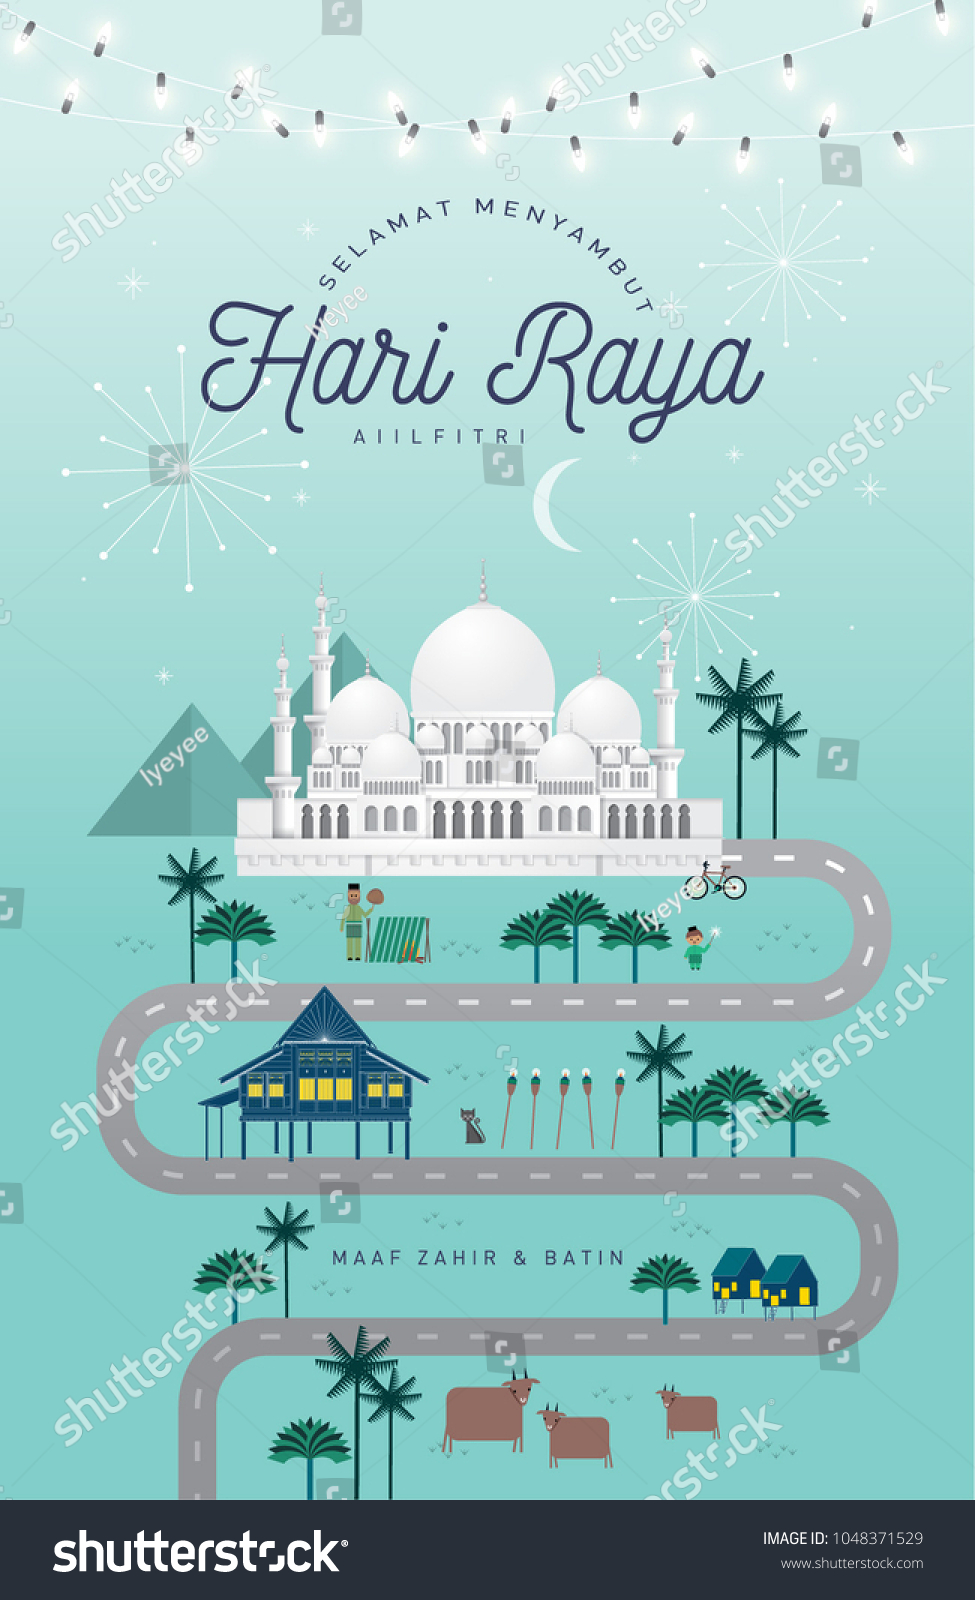 Hari Raya Journey Greetings Template Vectorillustration Stock Vector